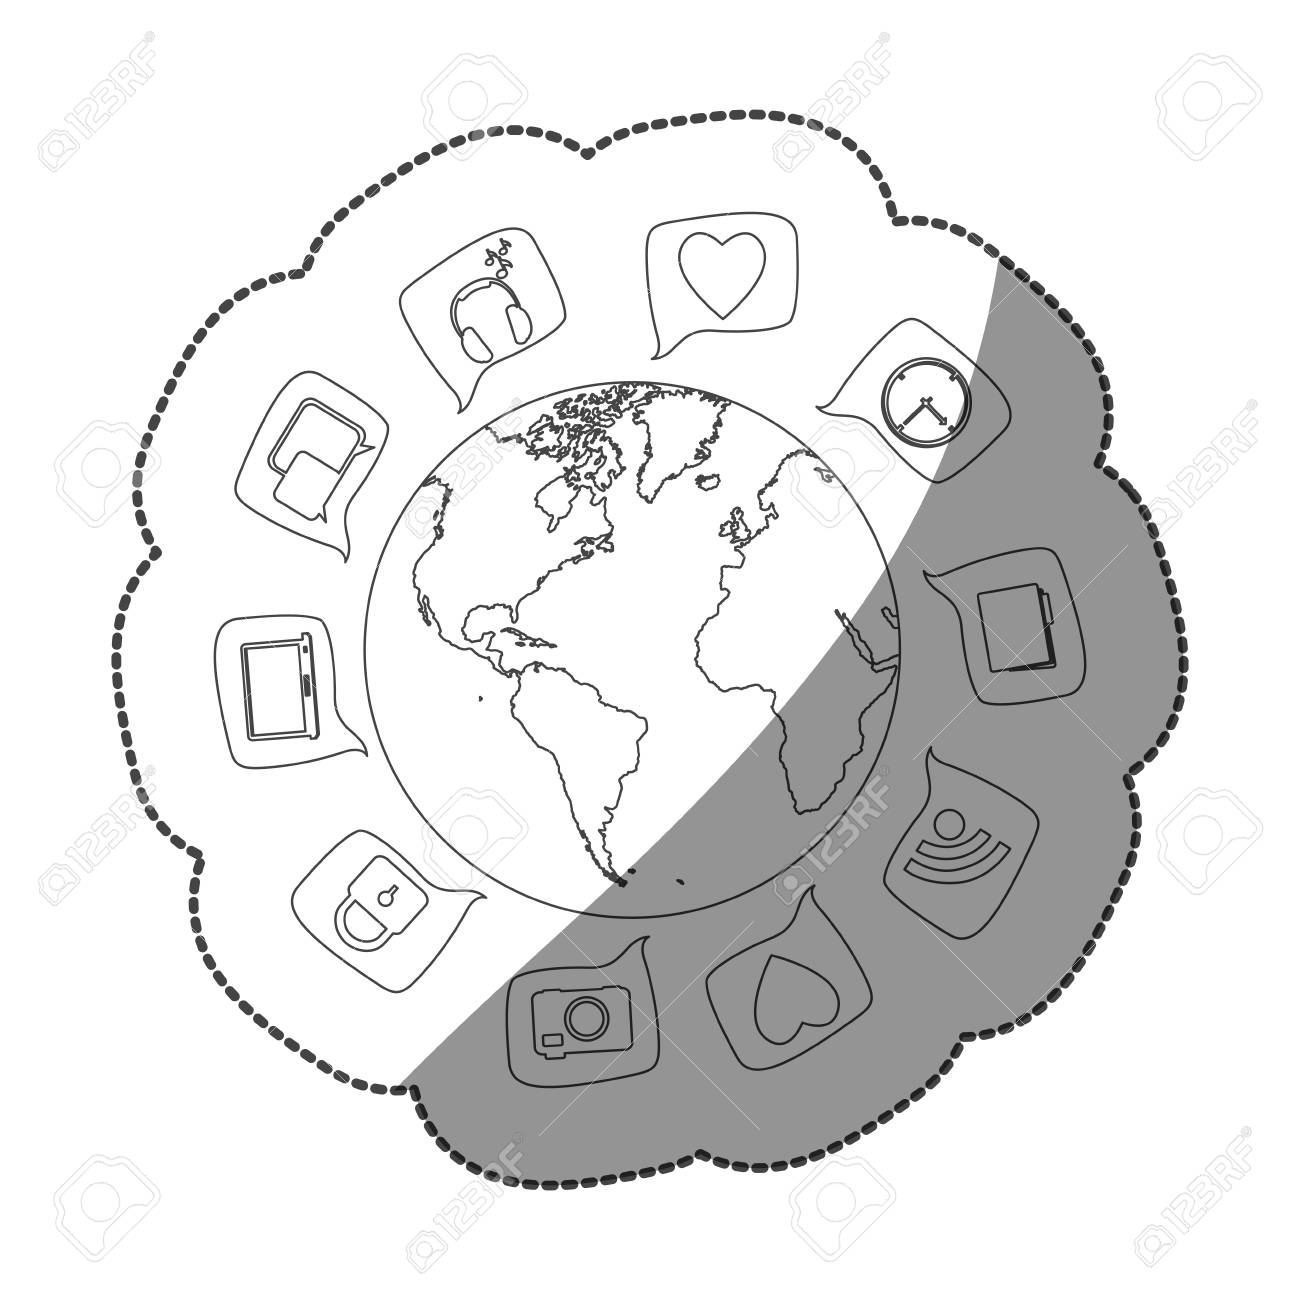 Sticker silhouette world map globe with dialogue social icons sticker silhouette world map globe with dialogue social icons vector illustration stock vector 75576316 gumiabroncs Choice Image